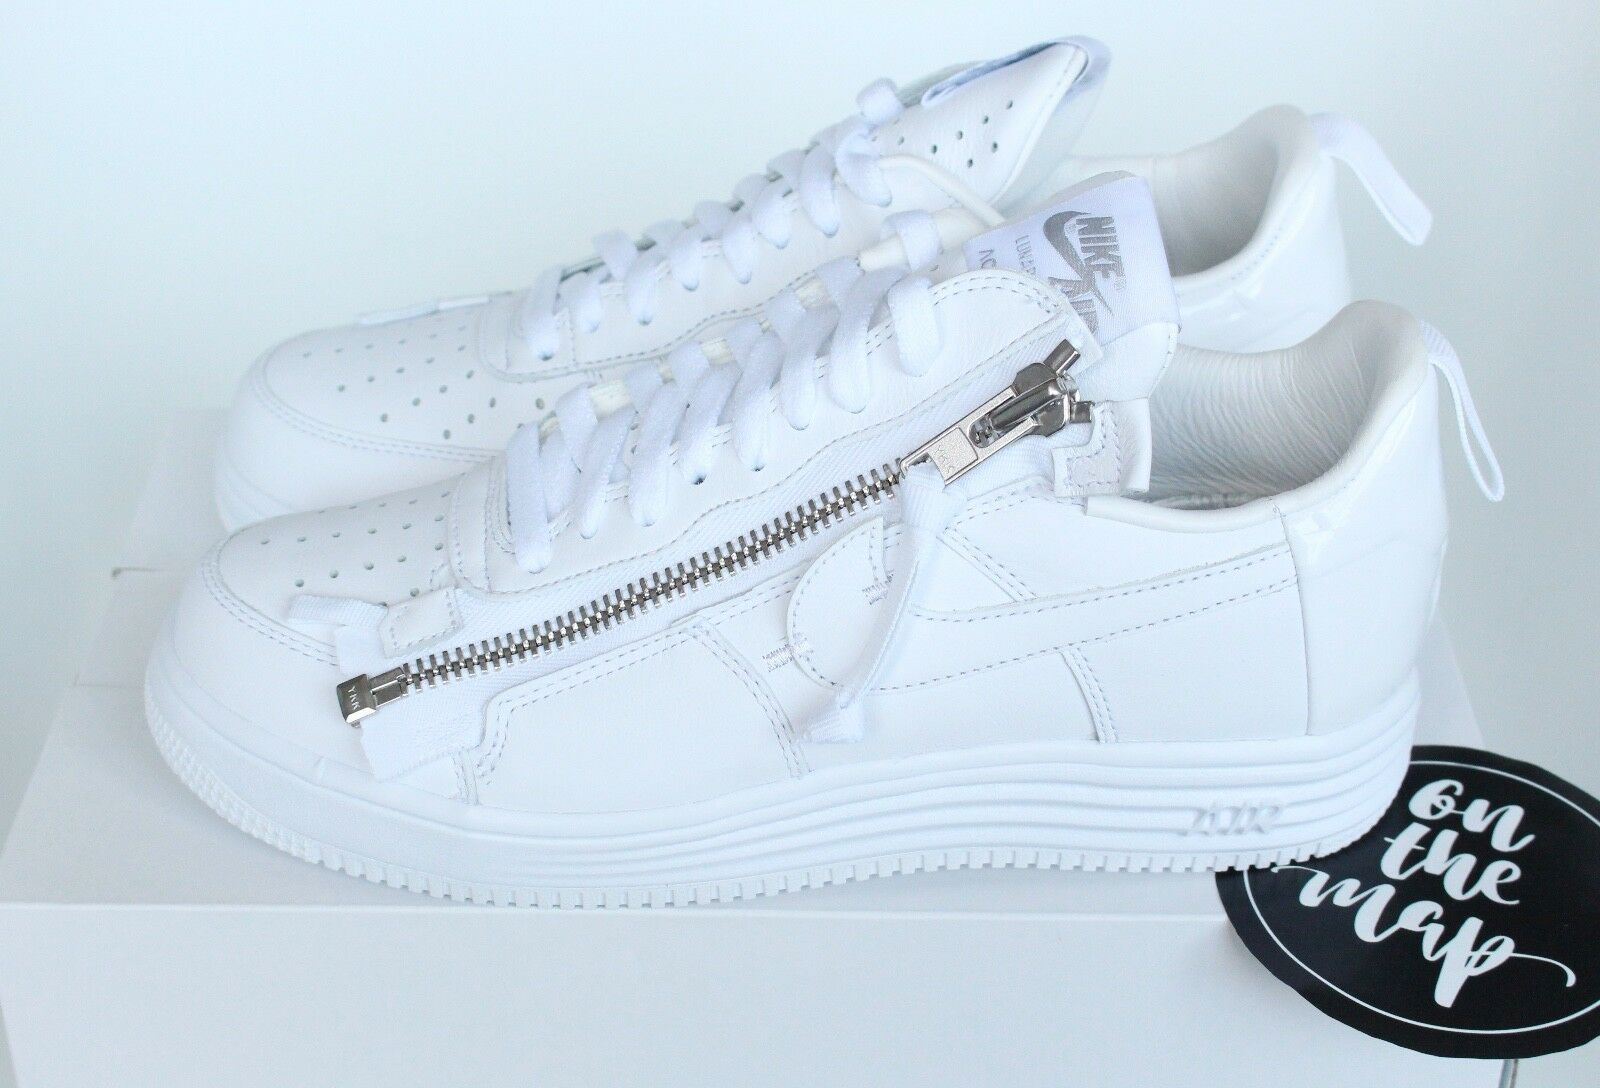 best website 45a03 1503e Nike Air Lunar Force 1 Low Acronym '17 AF1 Complexcon White UK 5 9 10 11 US  New